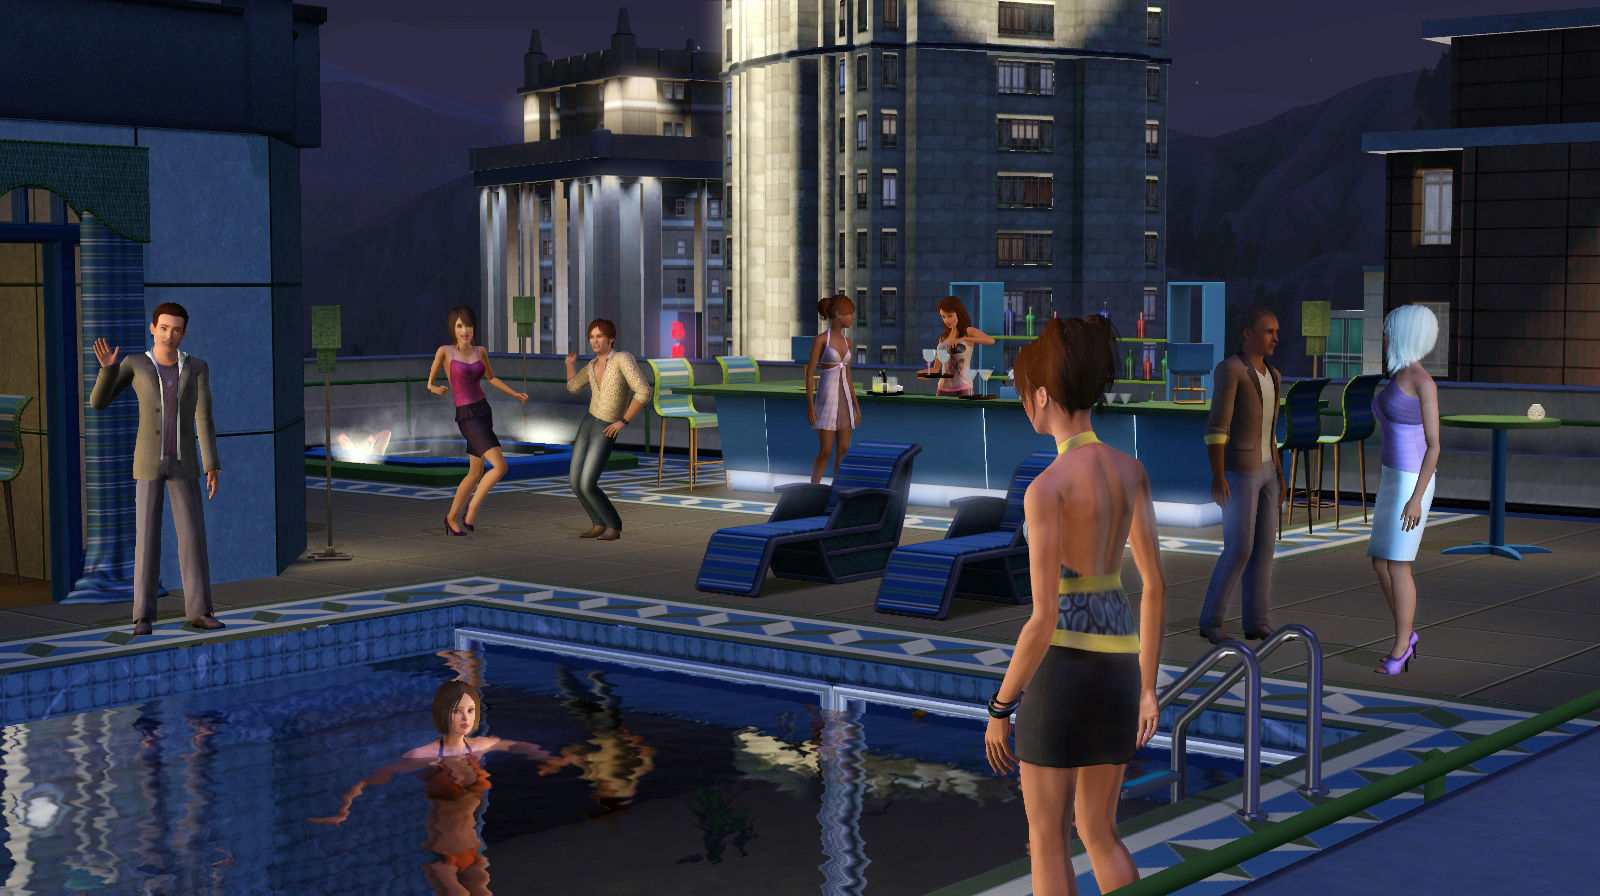 Goth sims 2 content sex objects softcore pics